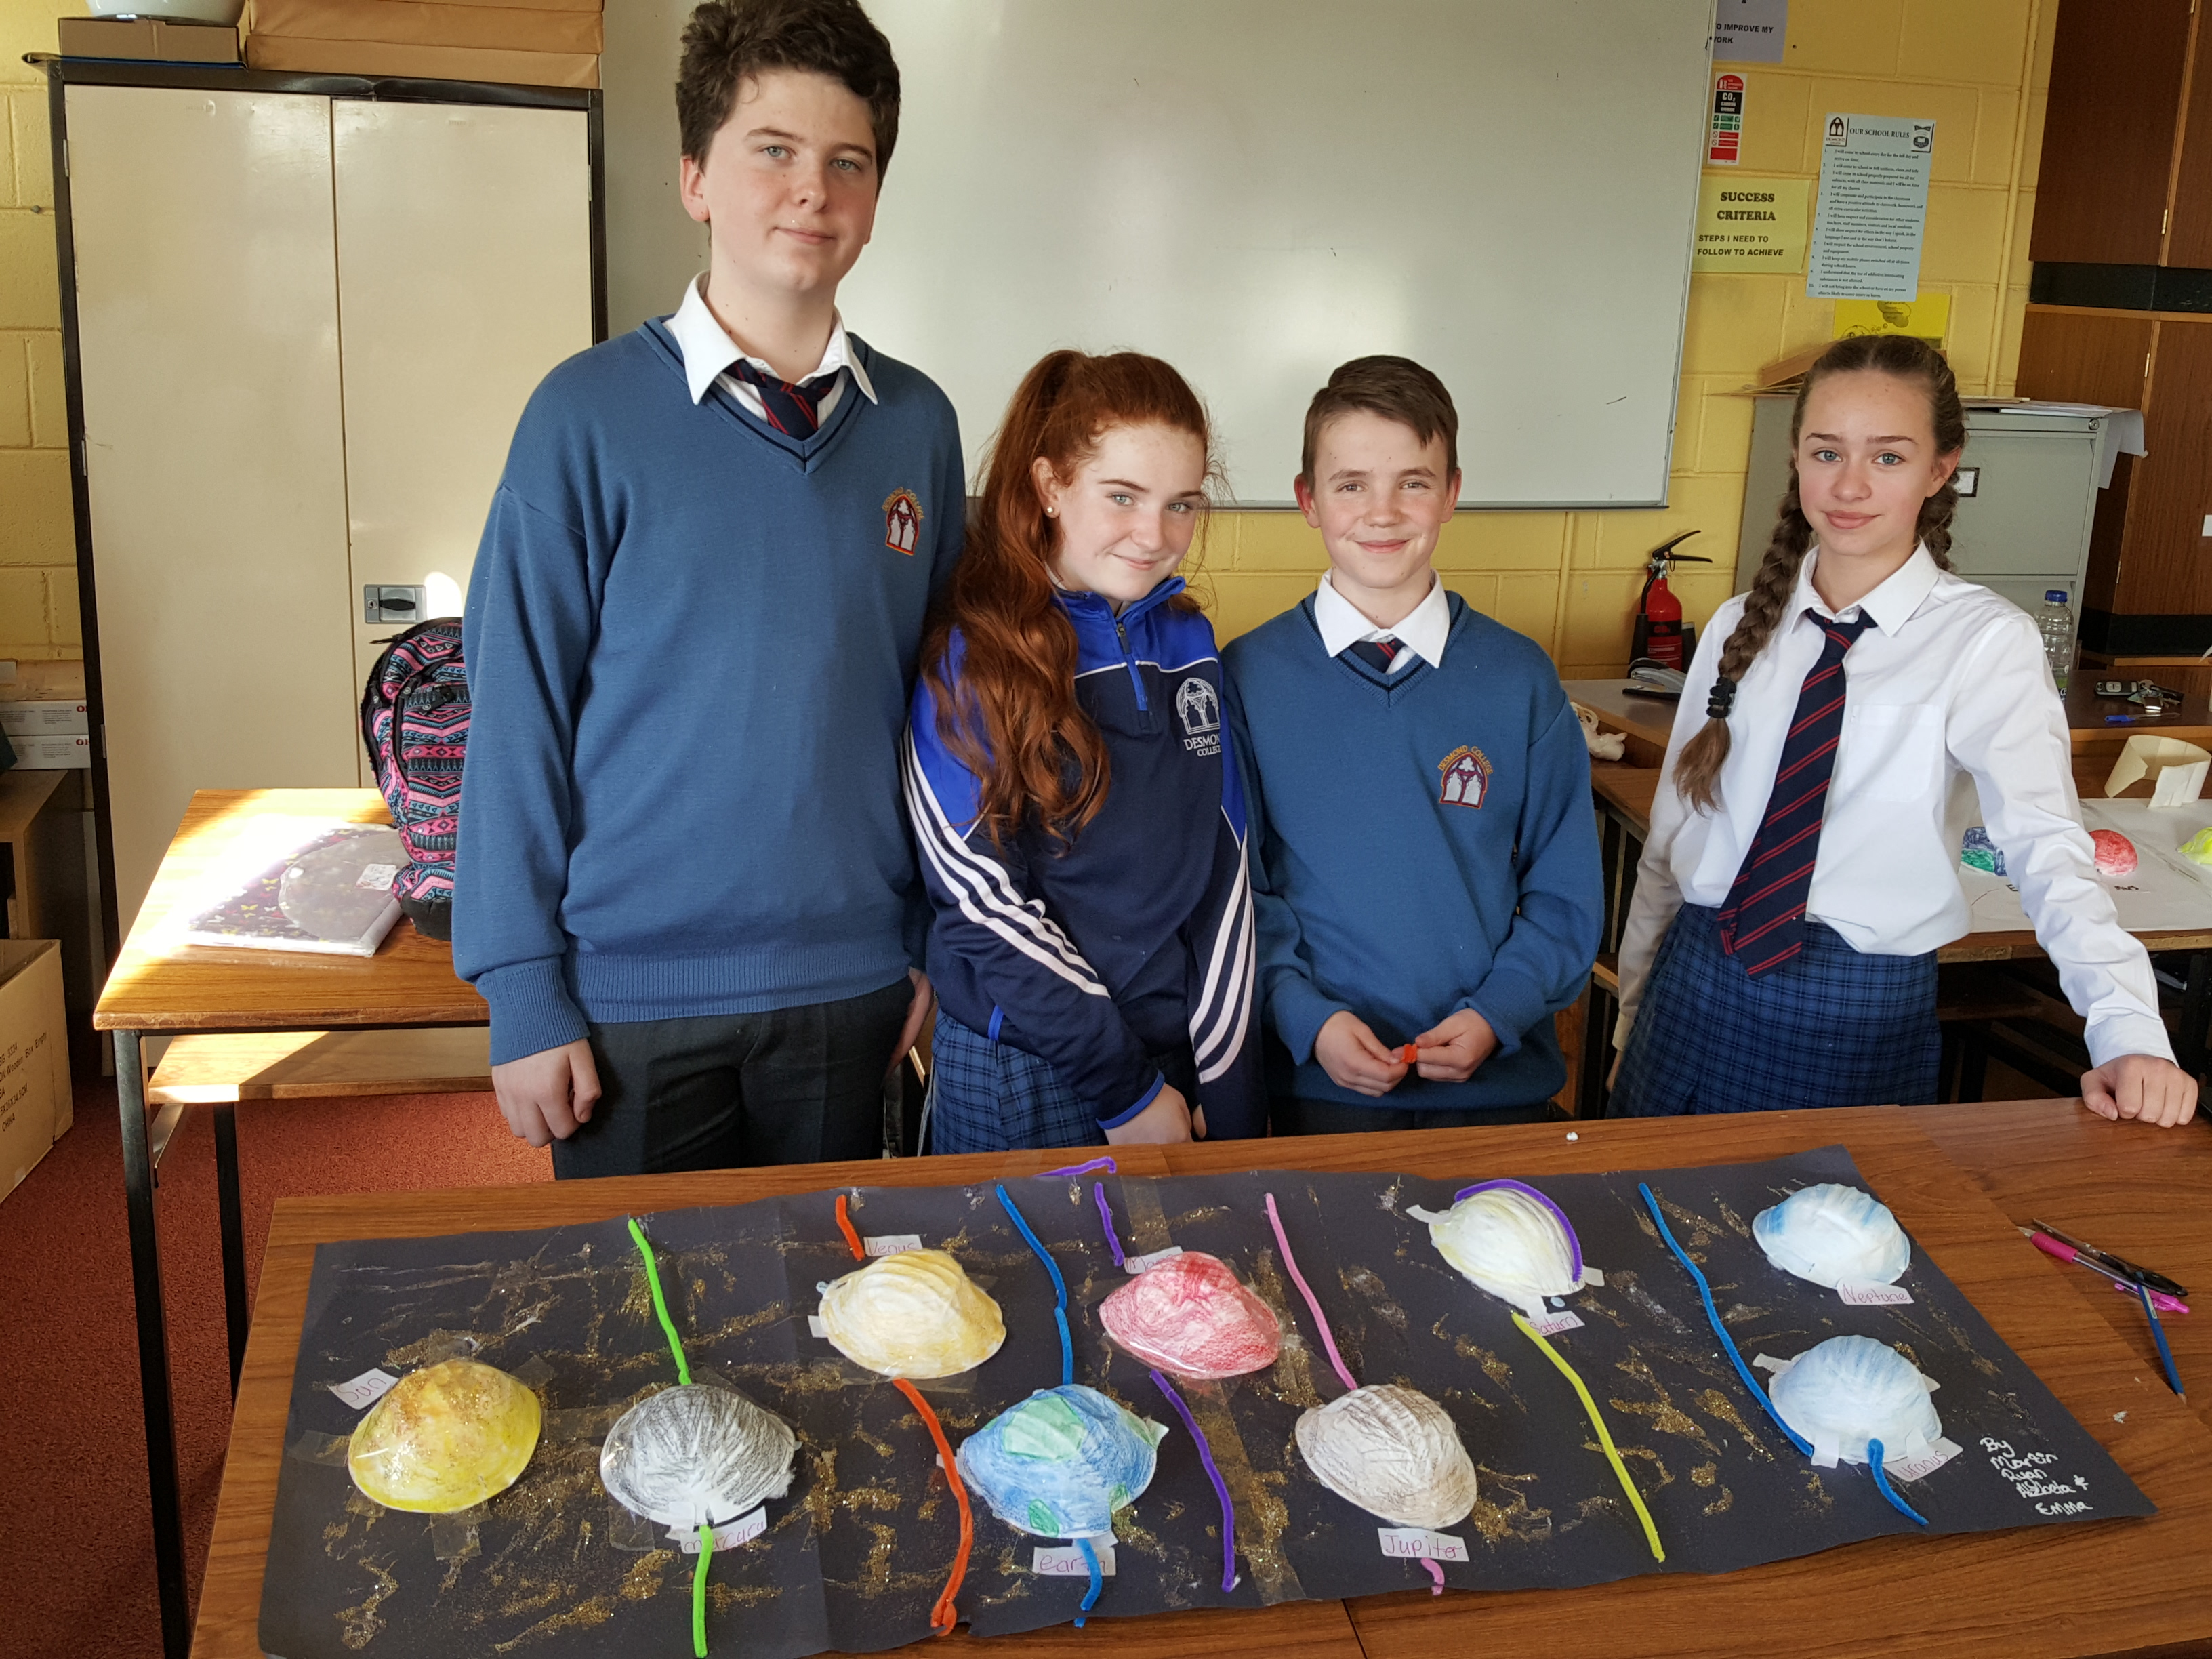 Martin Campbell, Emma O Shea, Ryan Moloney and Alzbeta Barisova making their Milky Way models